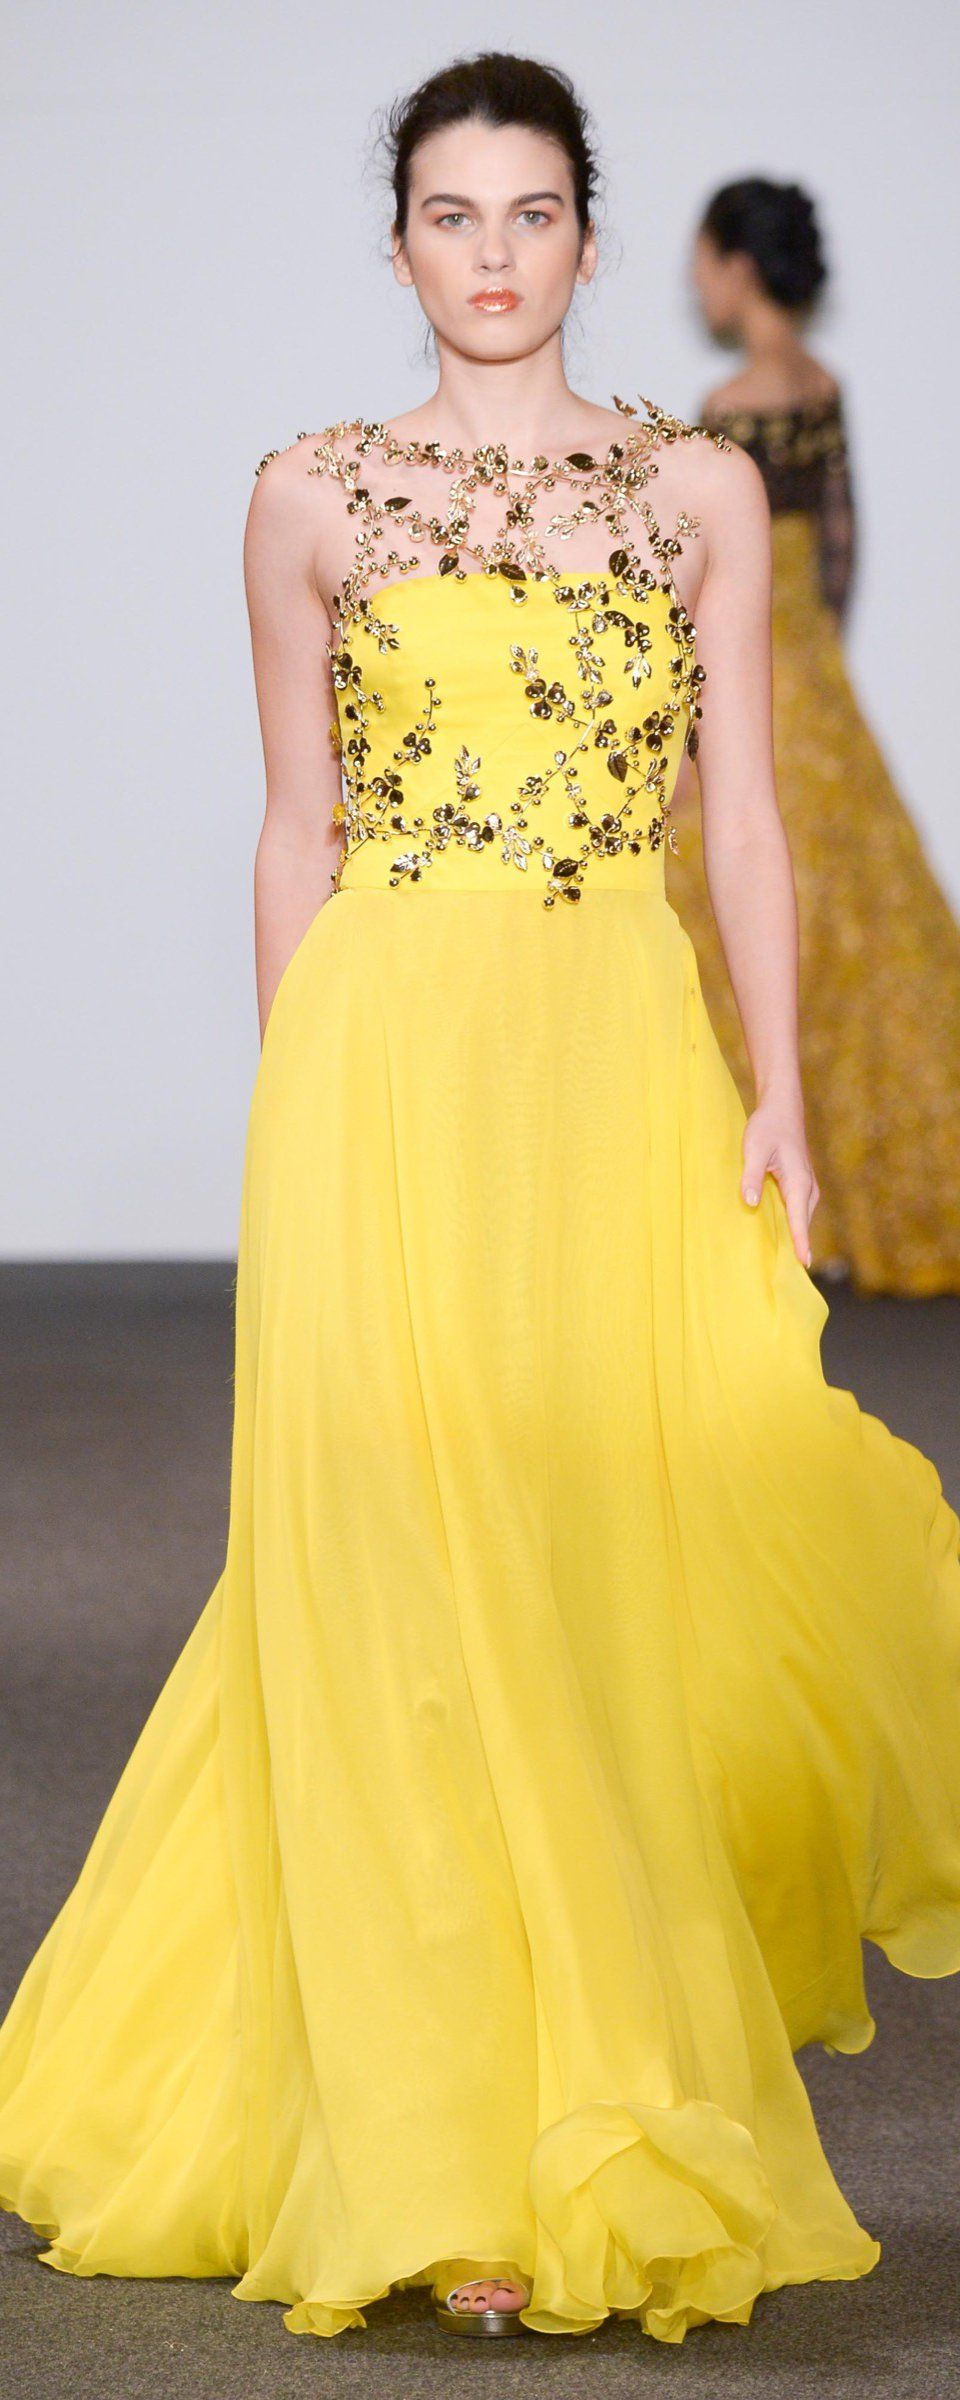 Dany Atrache Primavera Verão 2016 Alta Costura Yellow Fashion Gorgeous Gowns Fashion